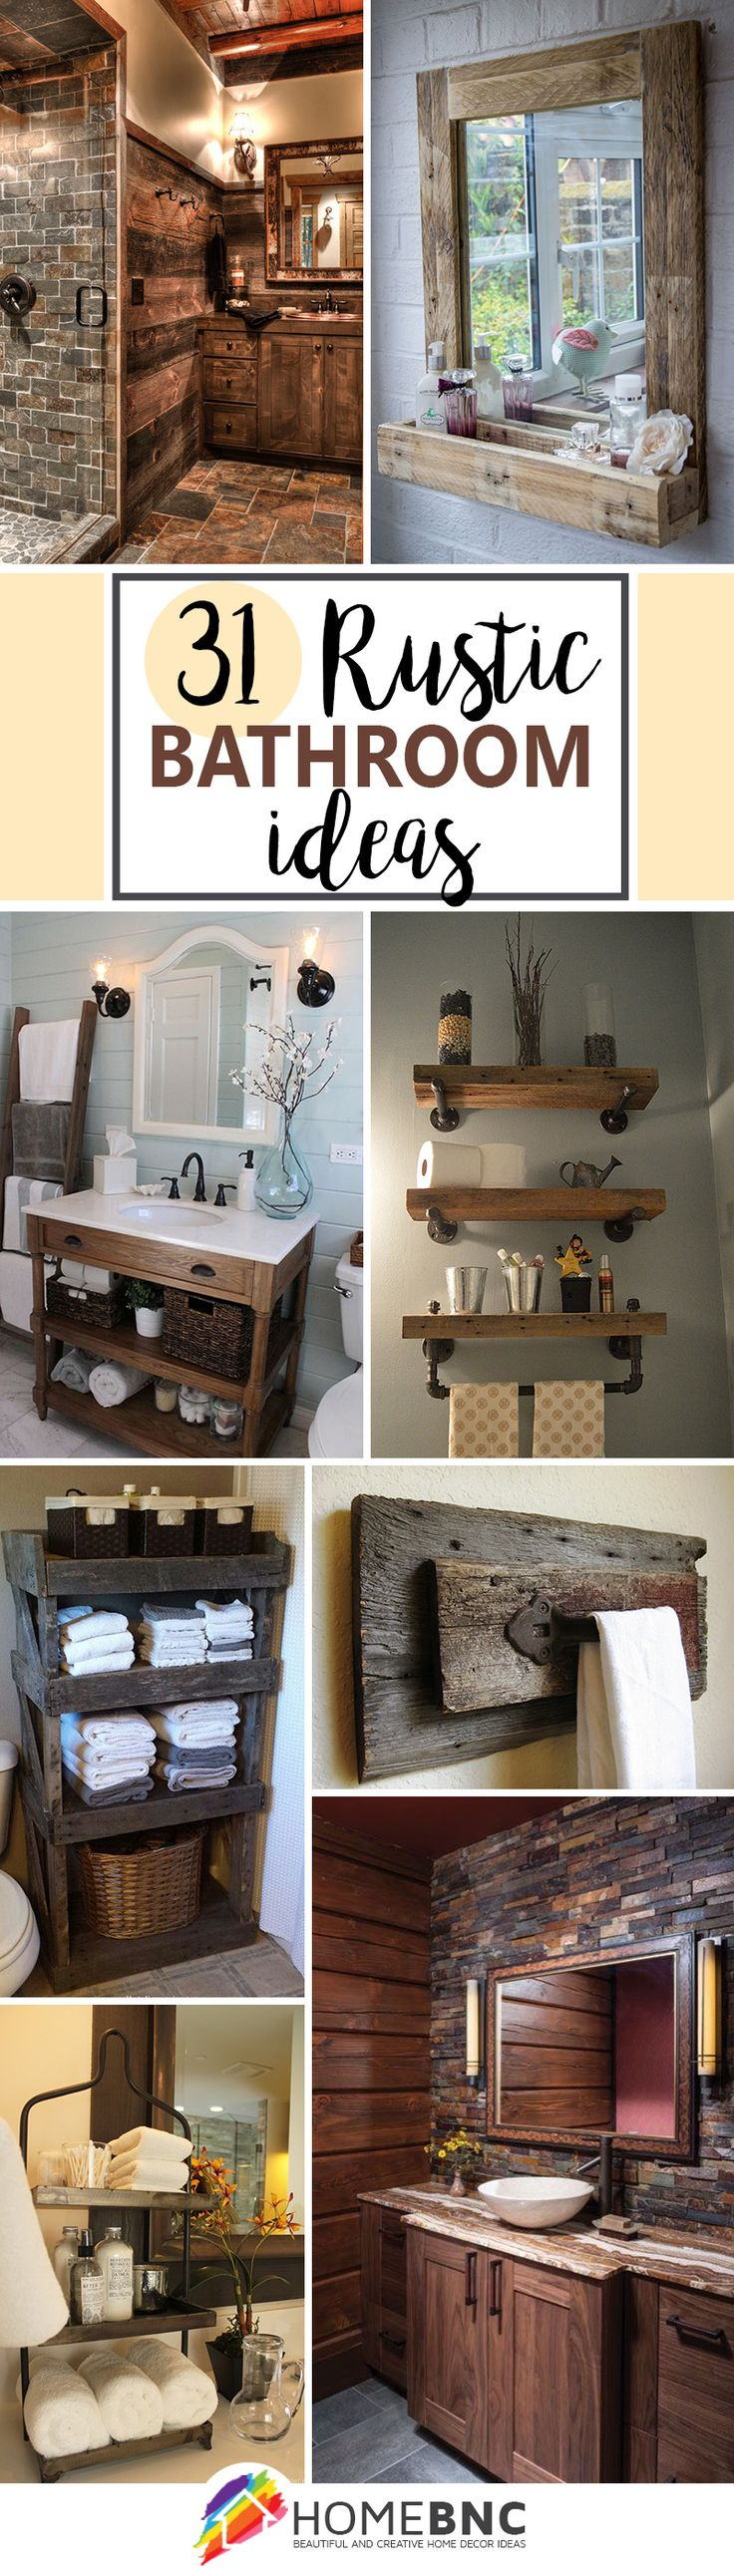 Gorgeous Rustic Bathroom Decor Ideas To Try At Home Rustic - Country bathroom decor for small bathroom ideas